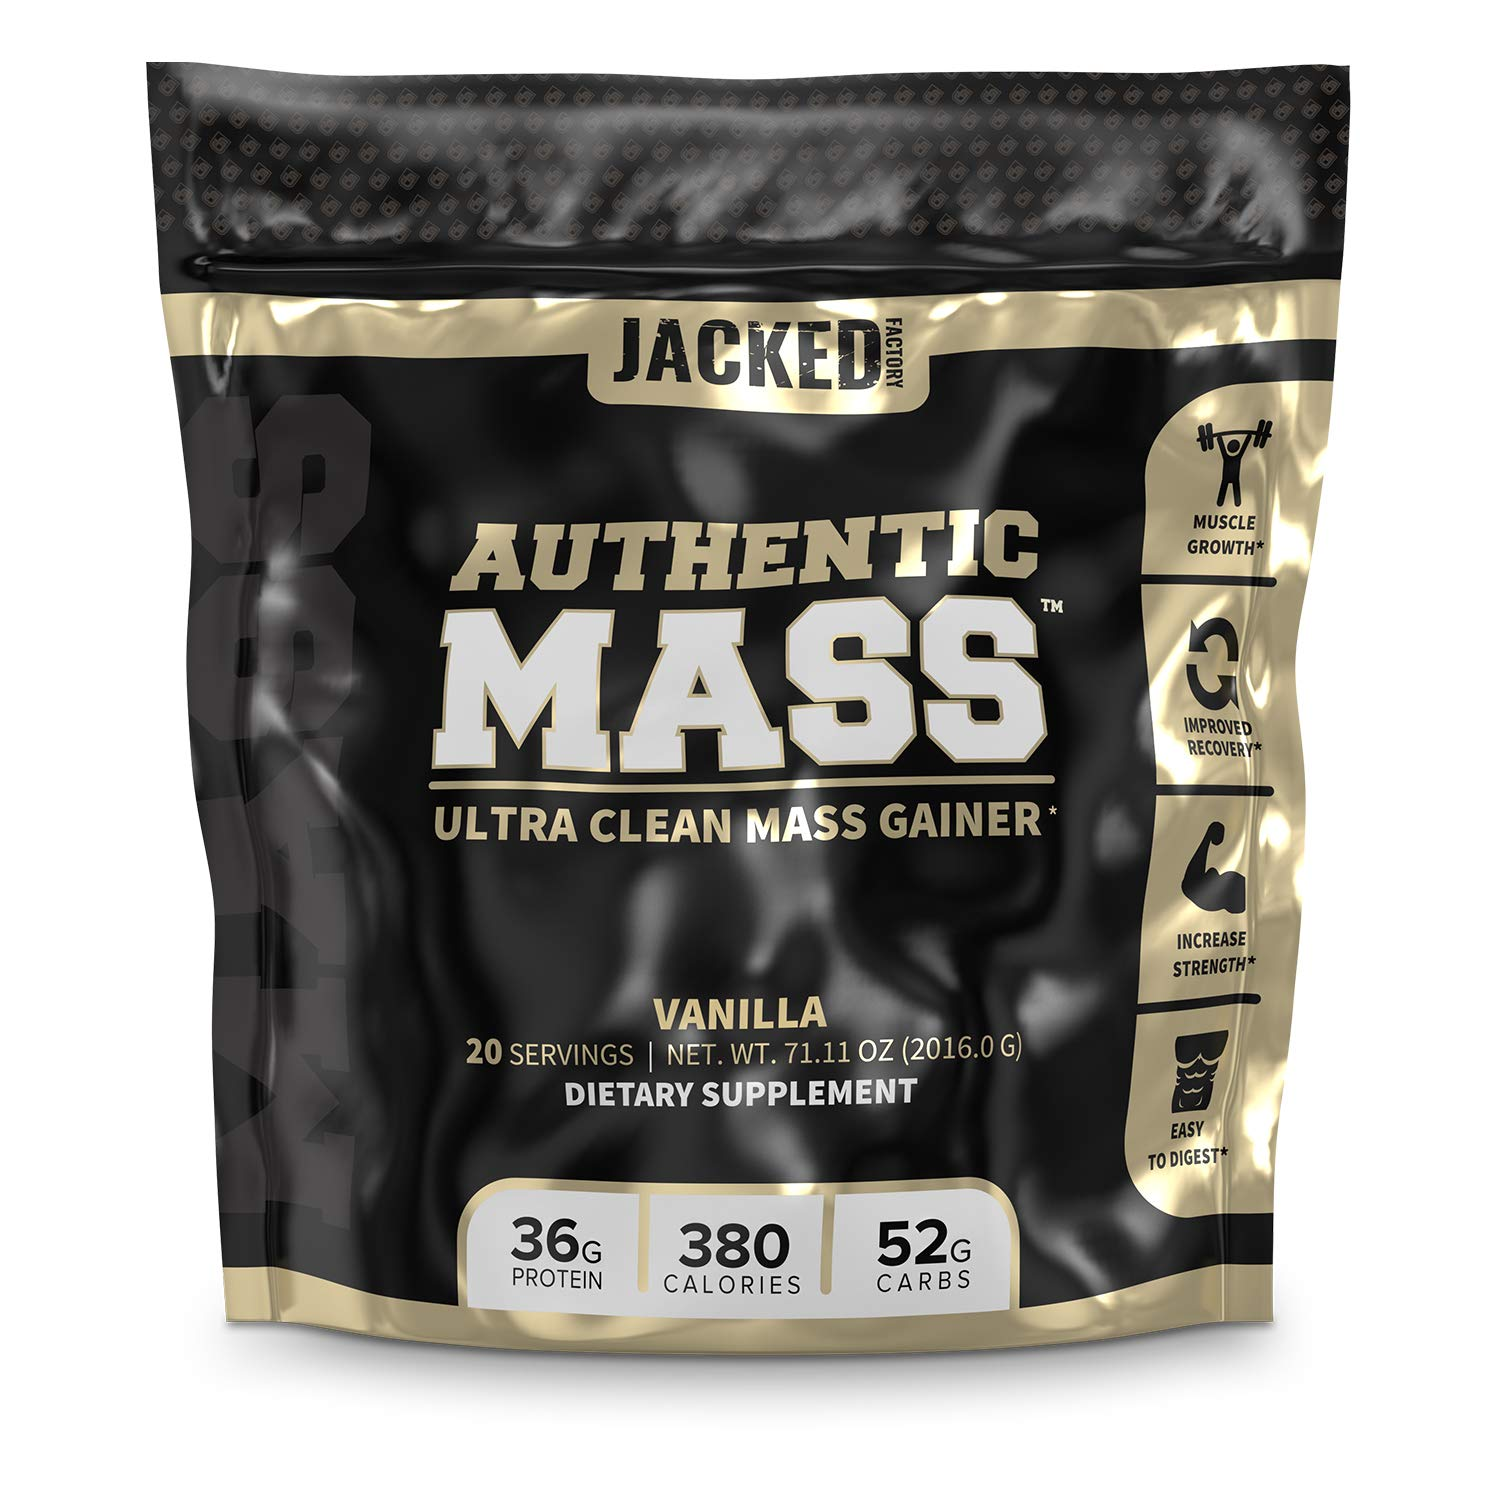 AUTHENTIC MASS Protein Powder Lean Muscle Growth Helps ...